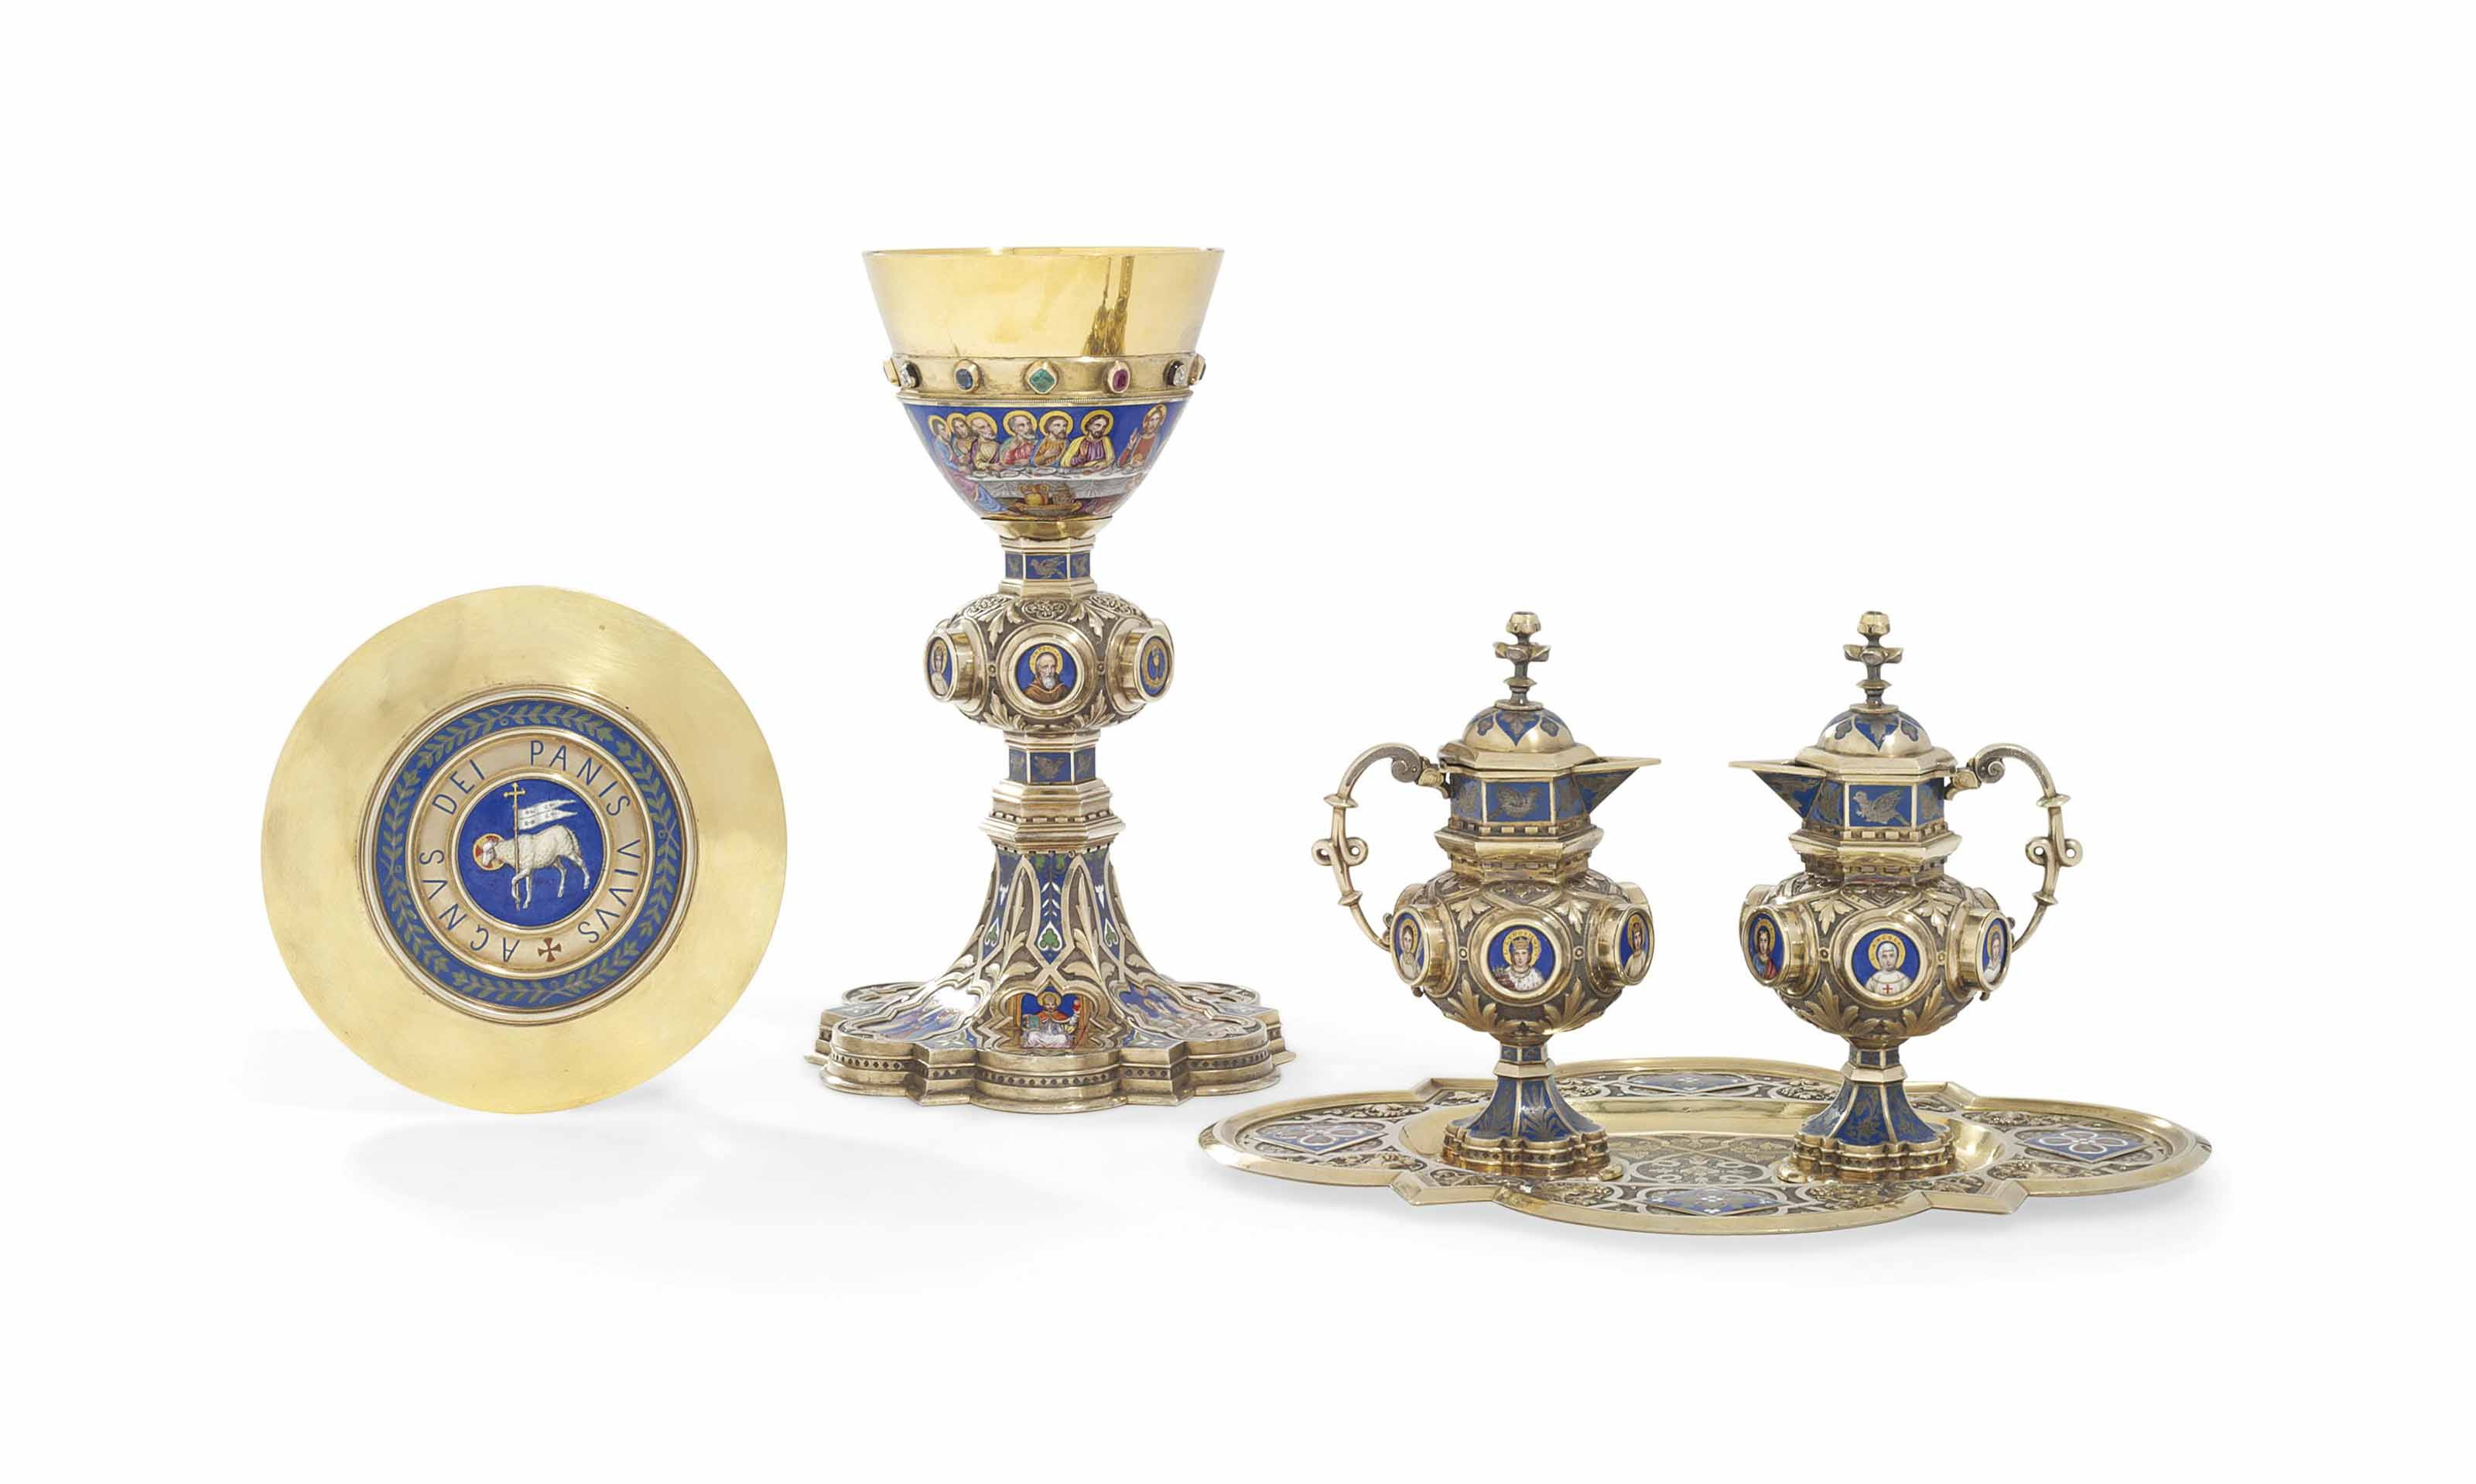 A FRENCH SILVER-GILT, GOLD AND ENAMEL COMMUNION-SERVICE